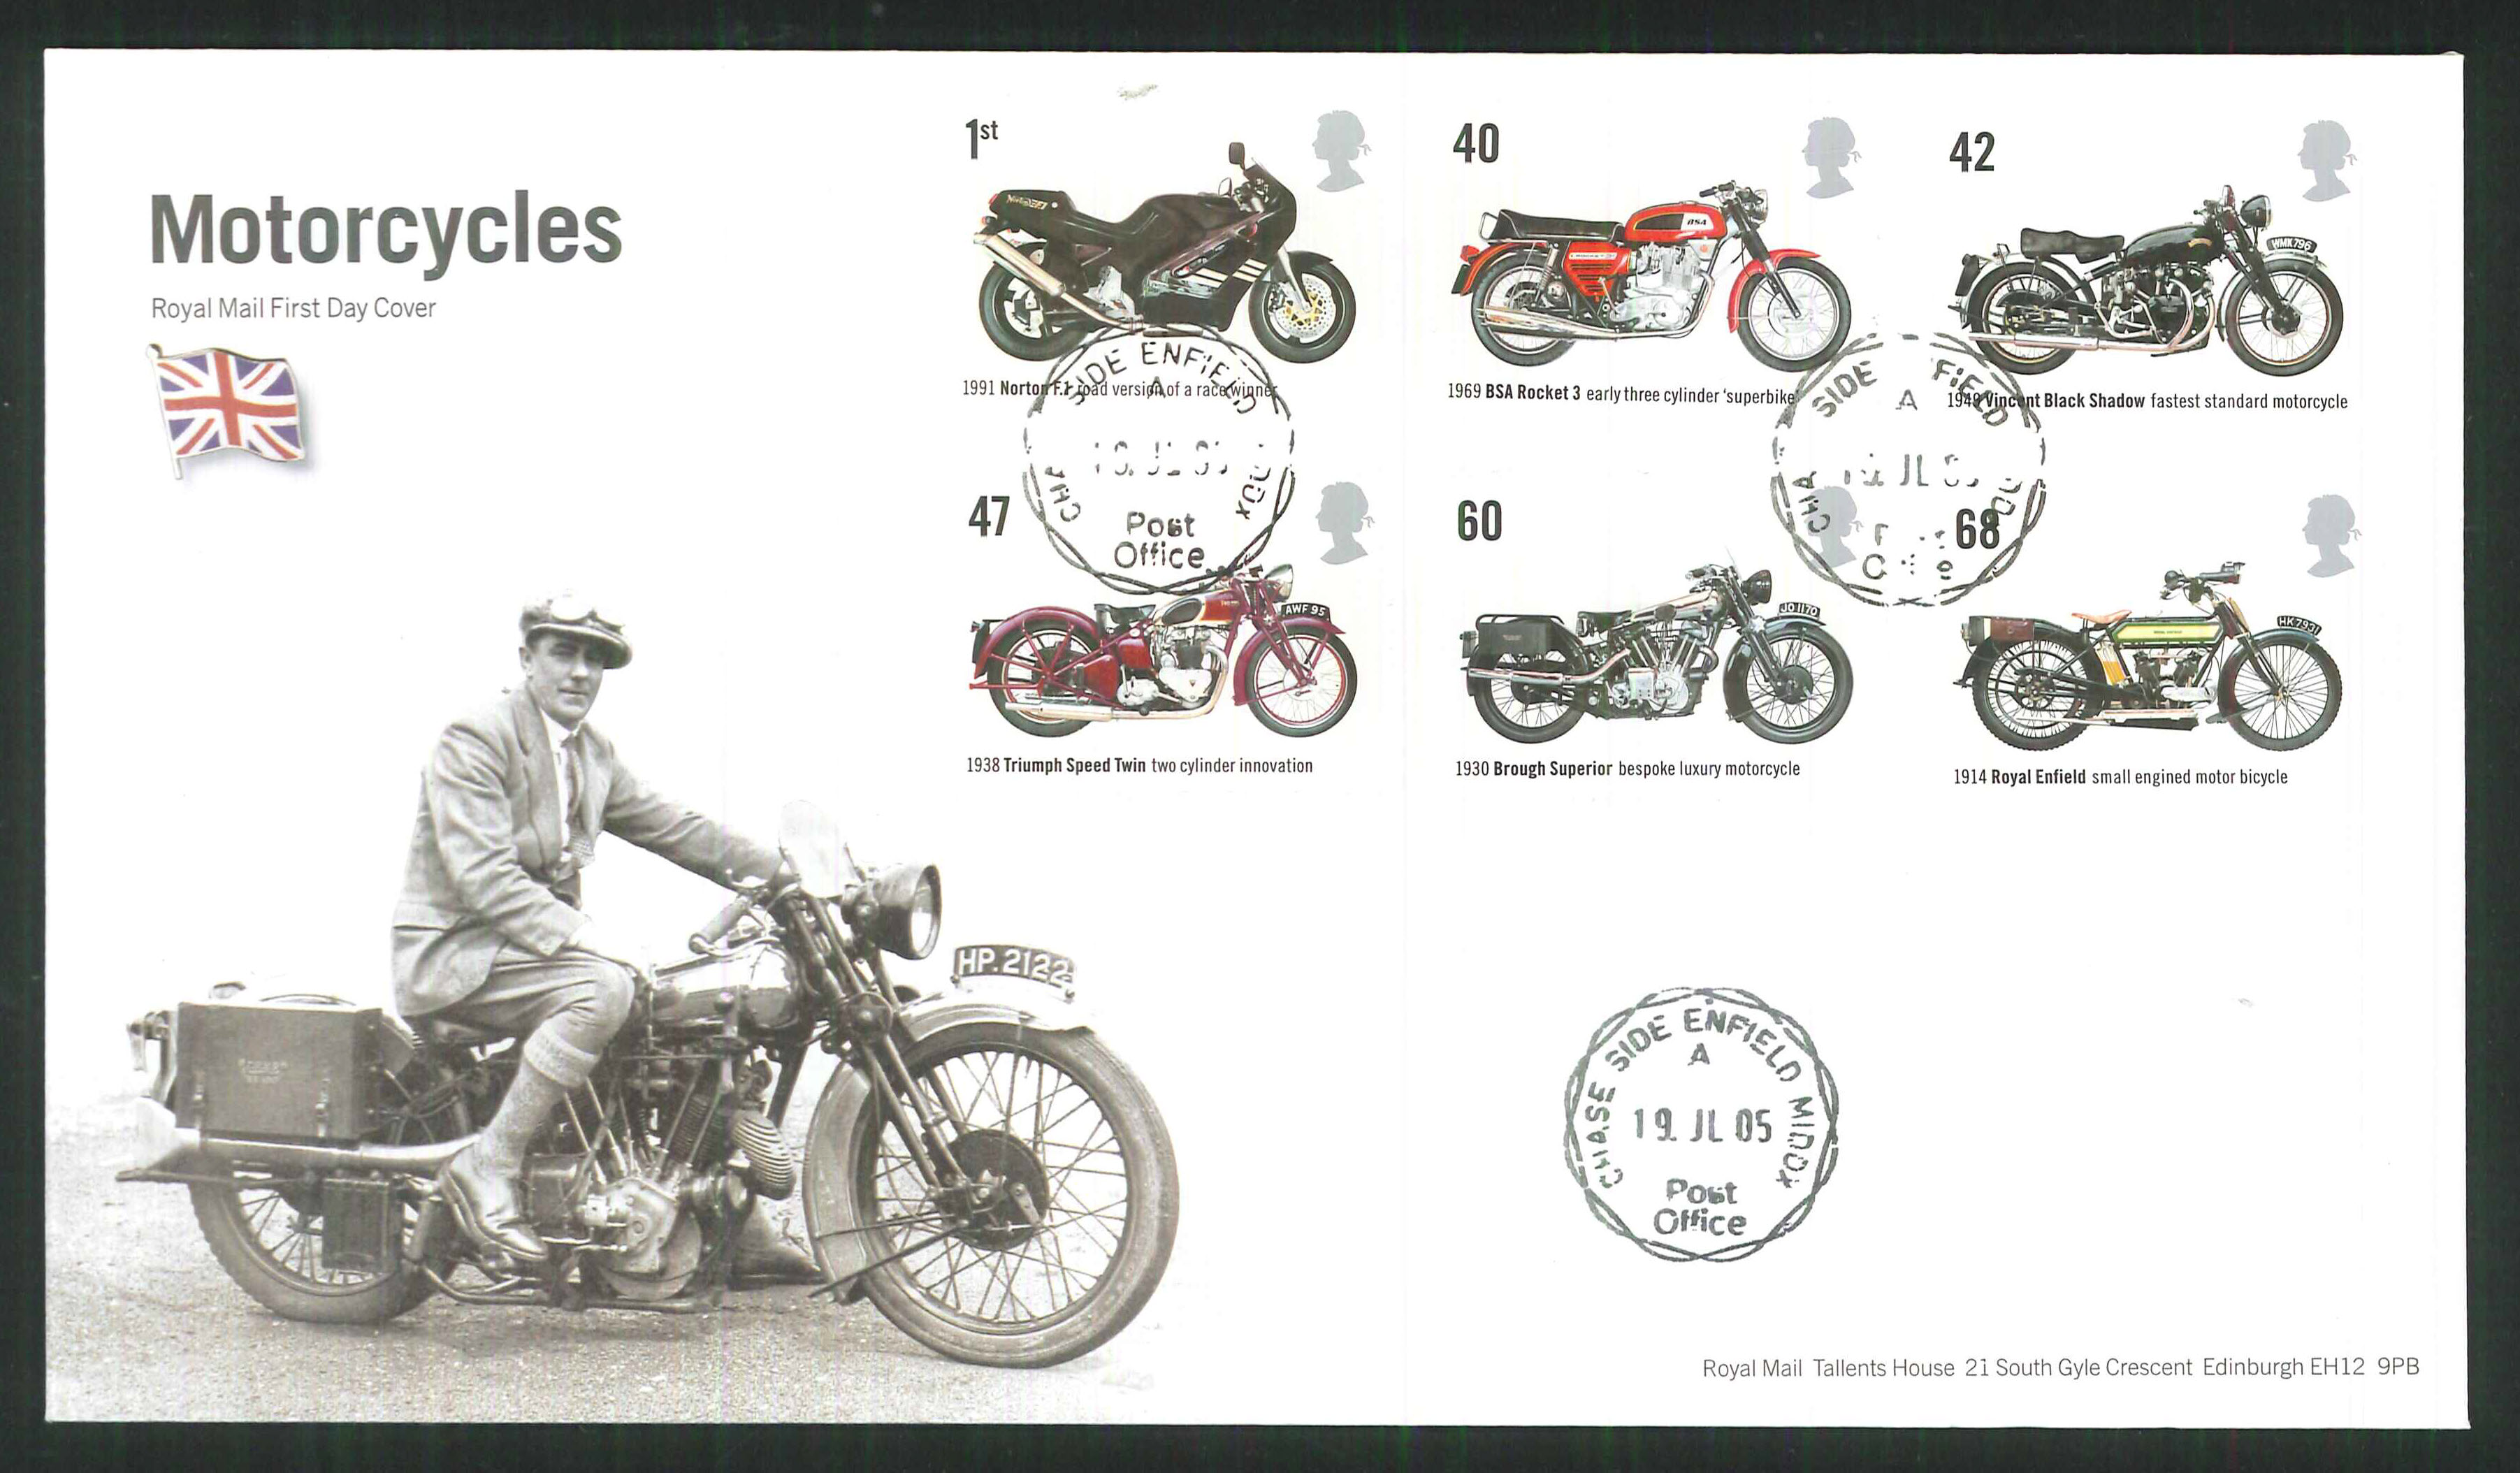 2005 British Motorcycles First Day Cover - Enfield C D S Postmark